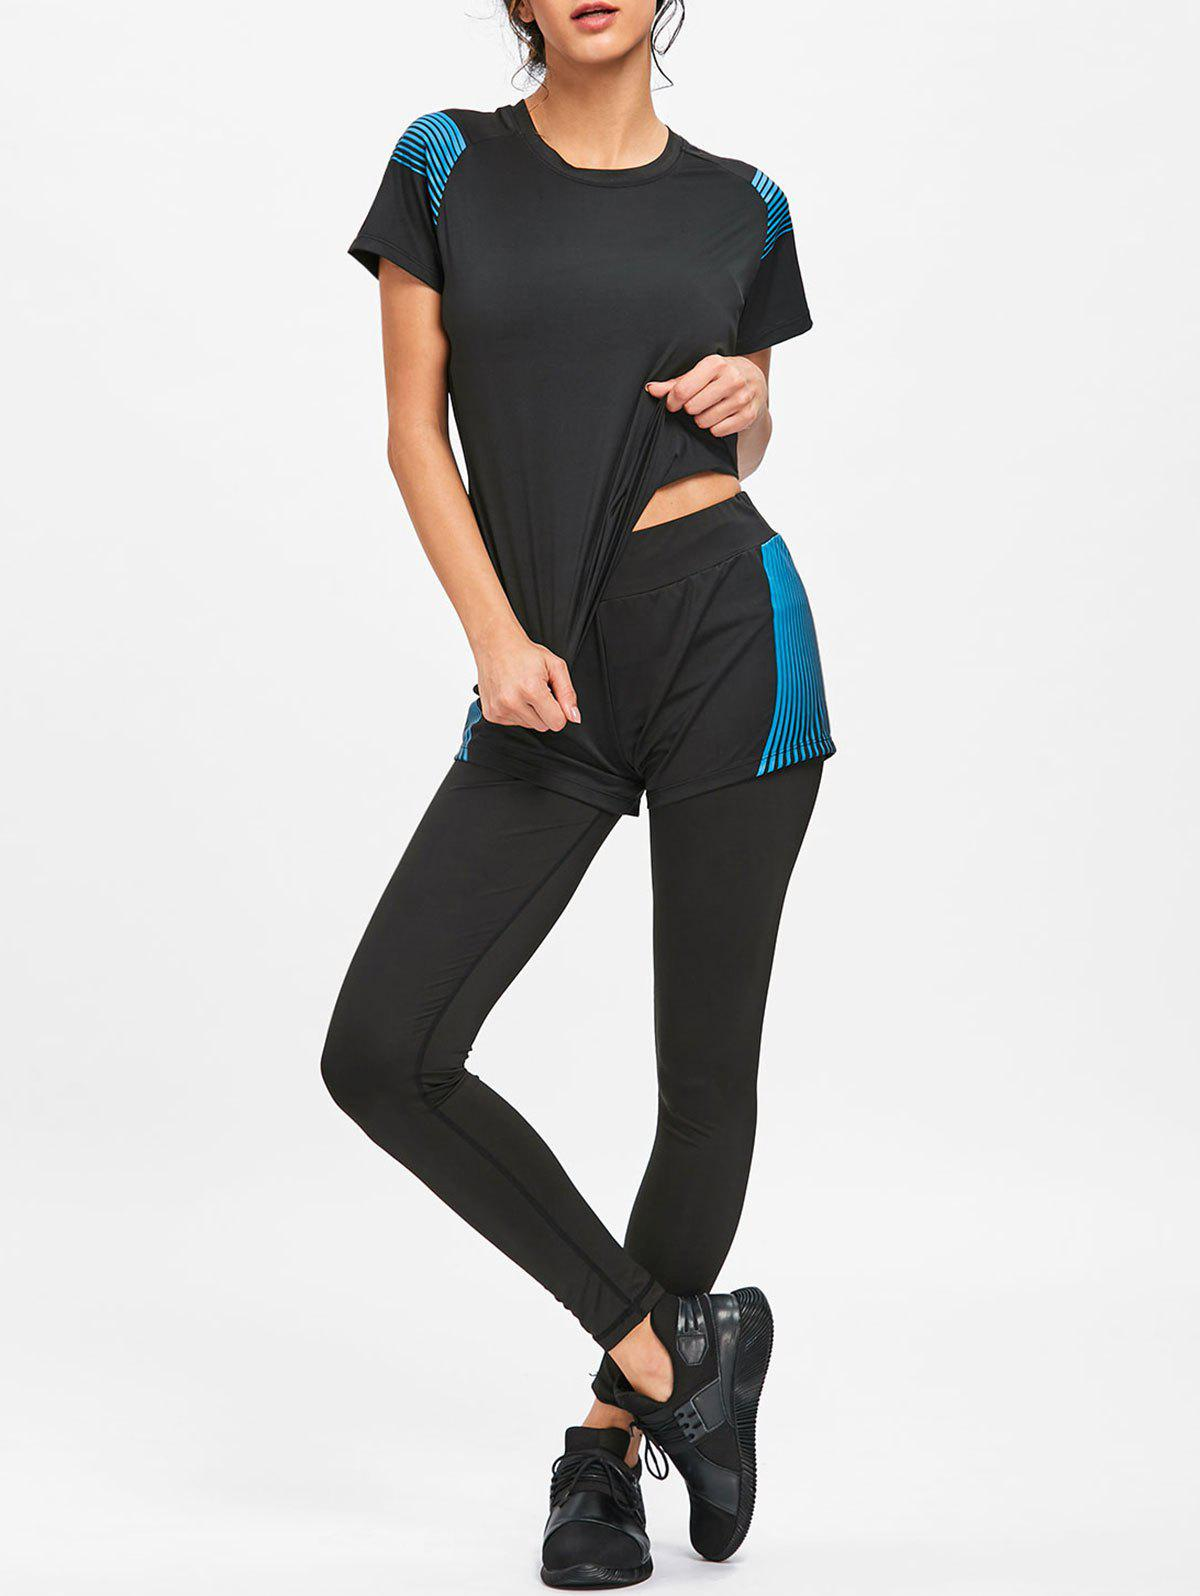 Hot Striped T-shirt Bra Shorts and Leggings Sports Suit